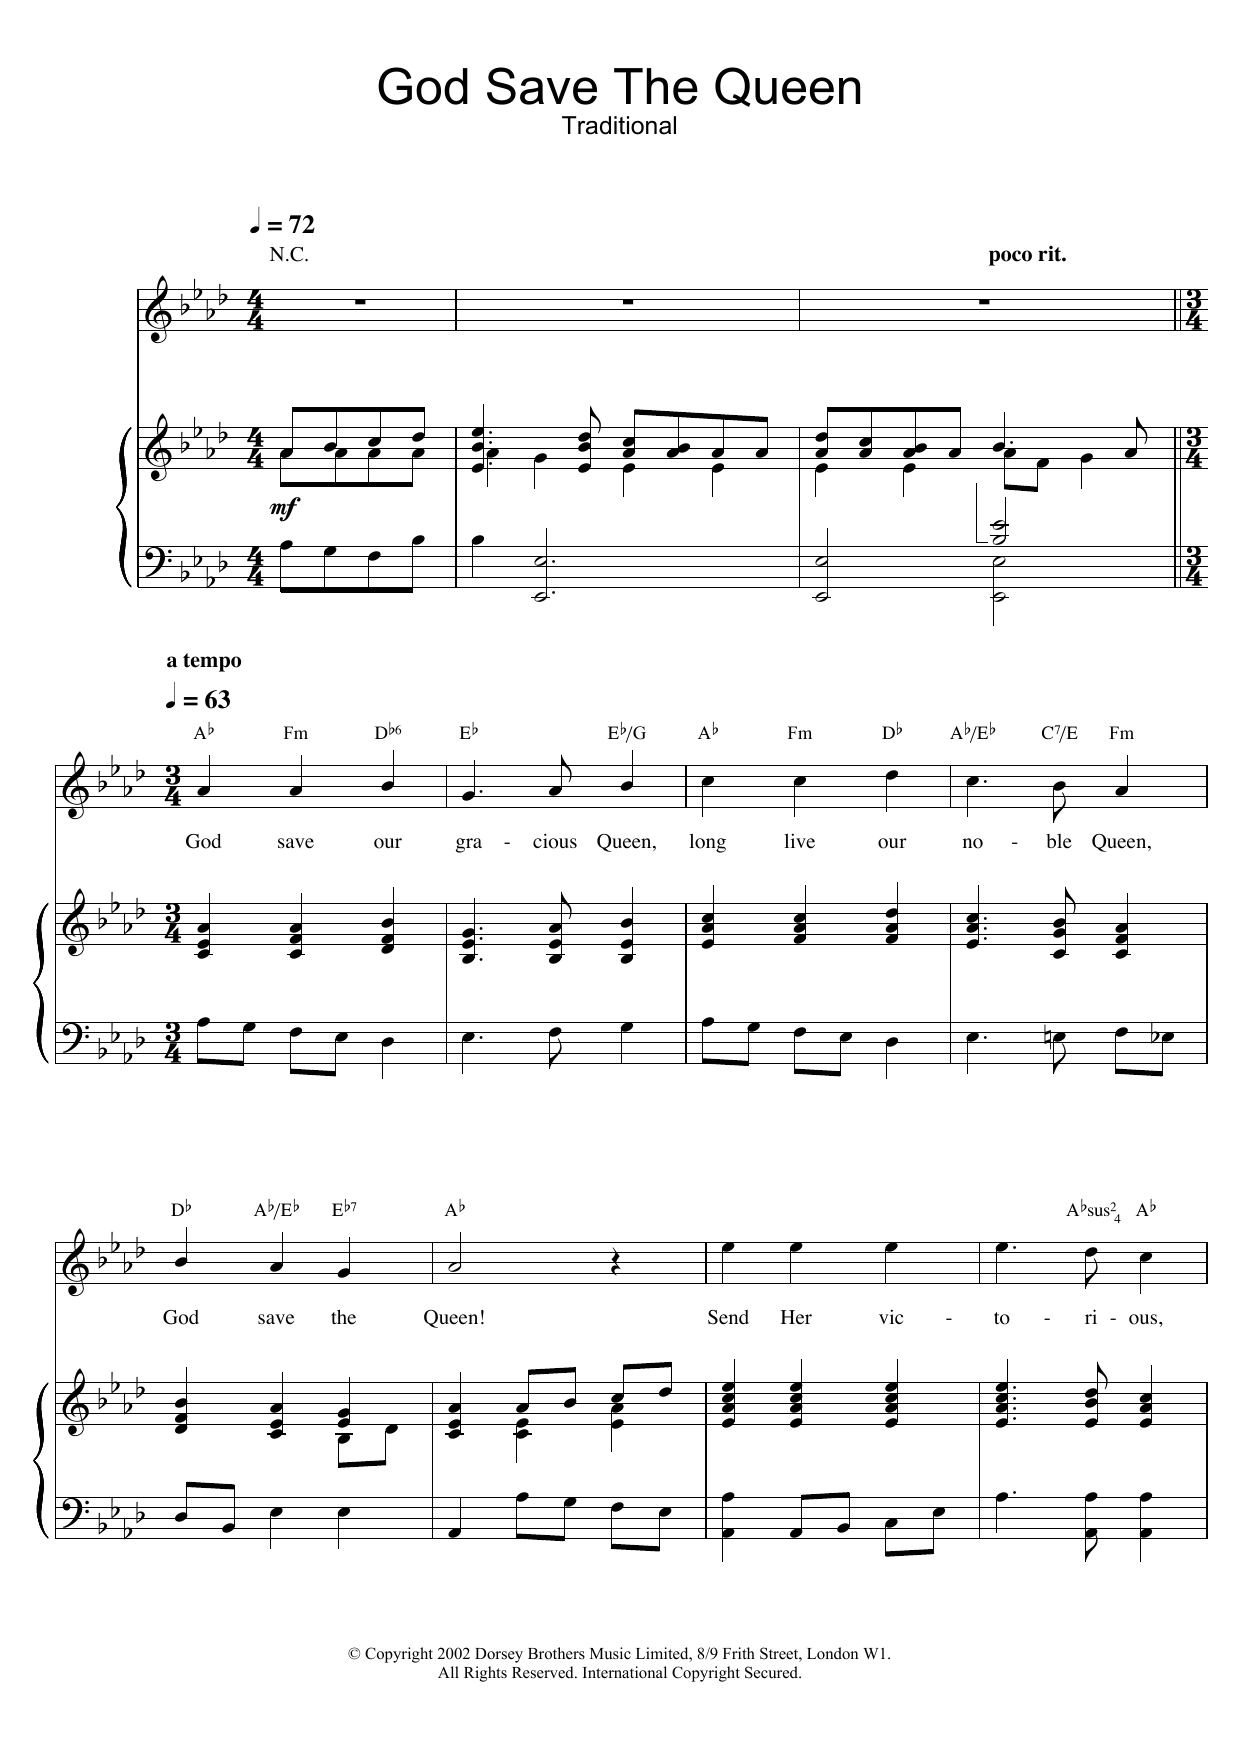 God save the queen guitar chords